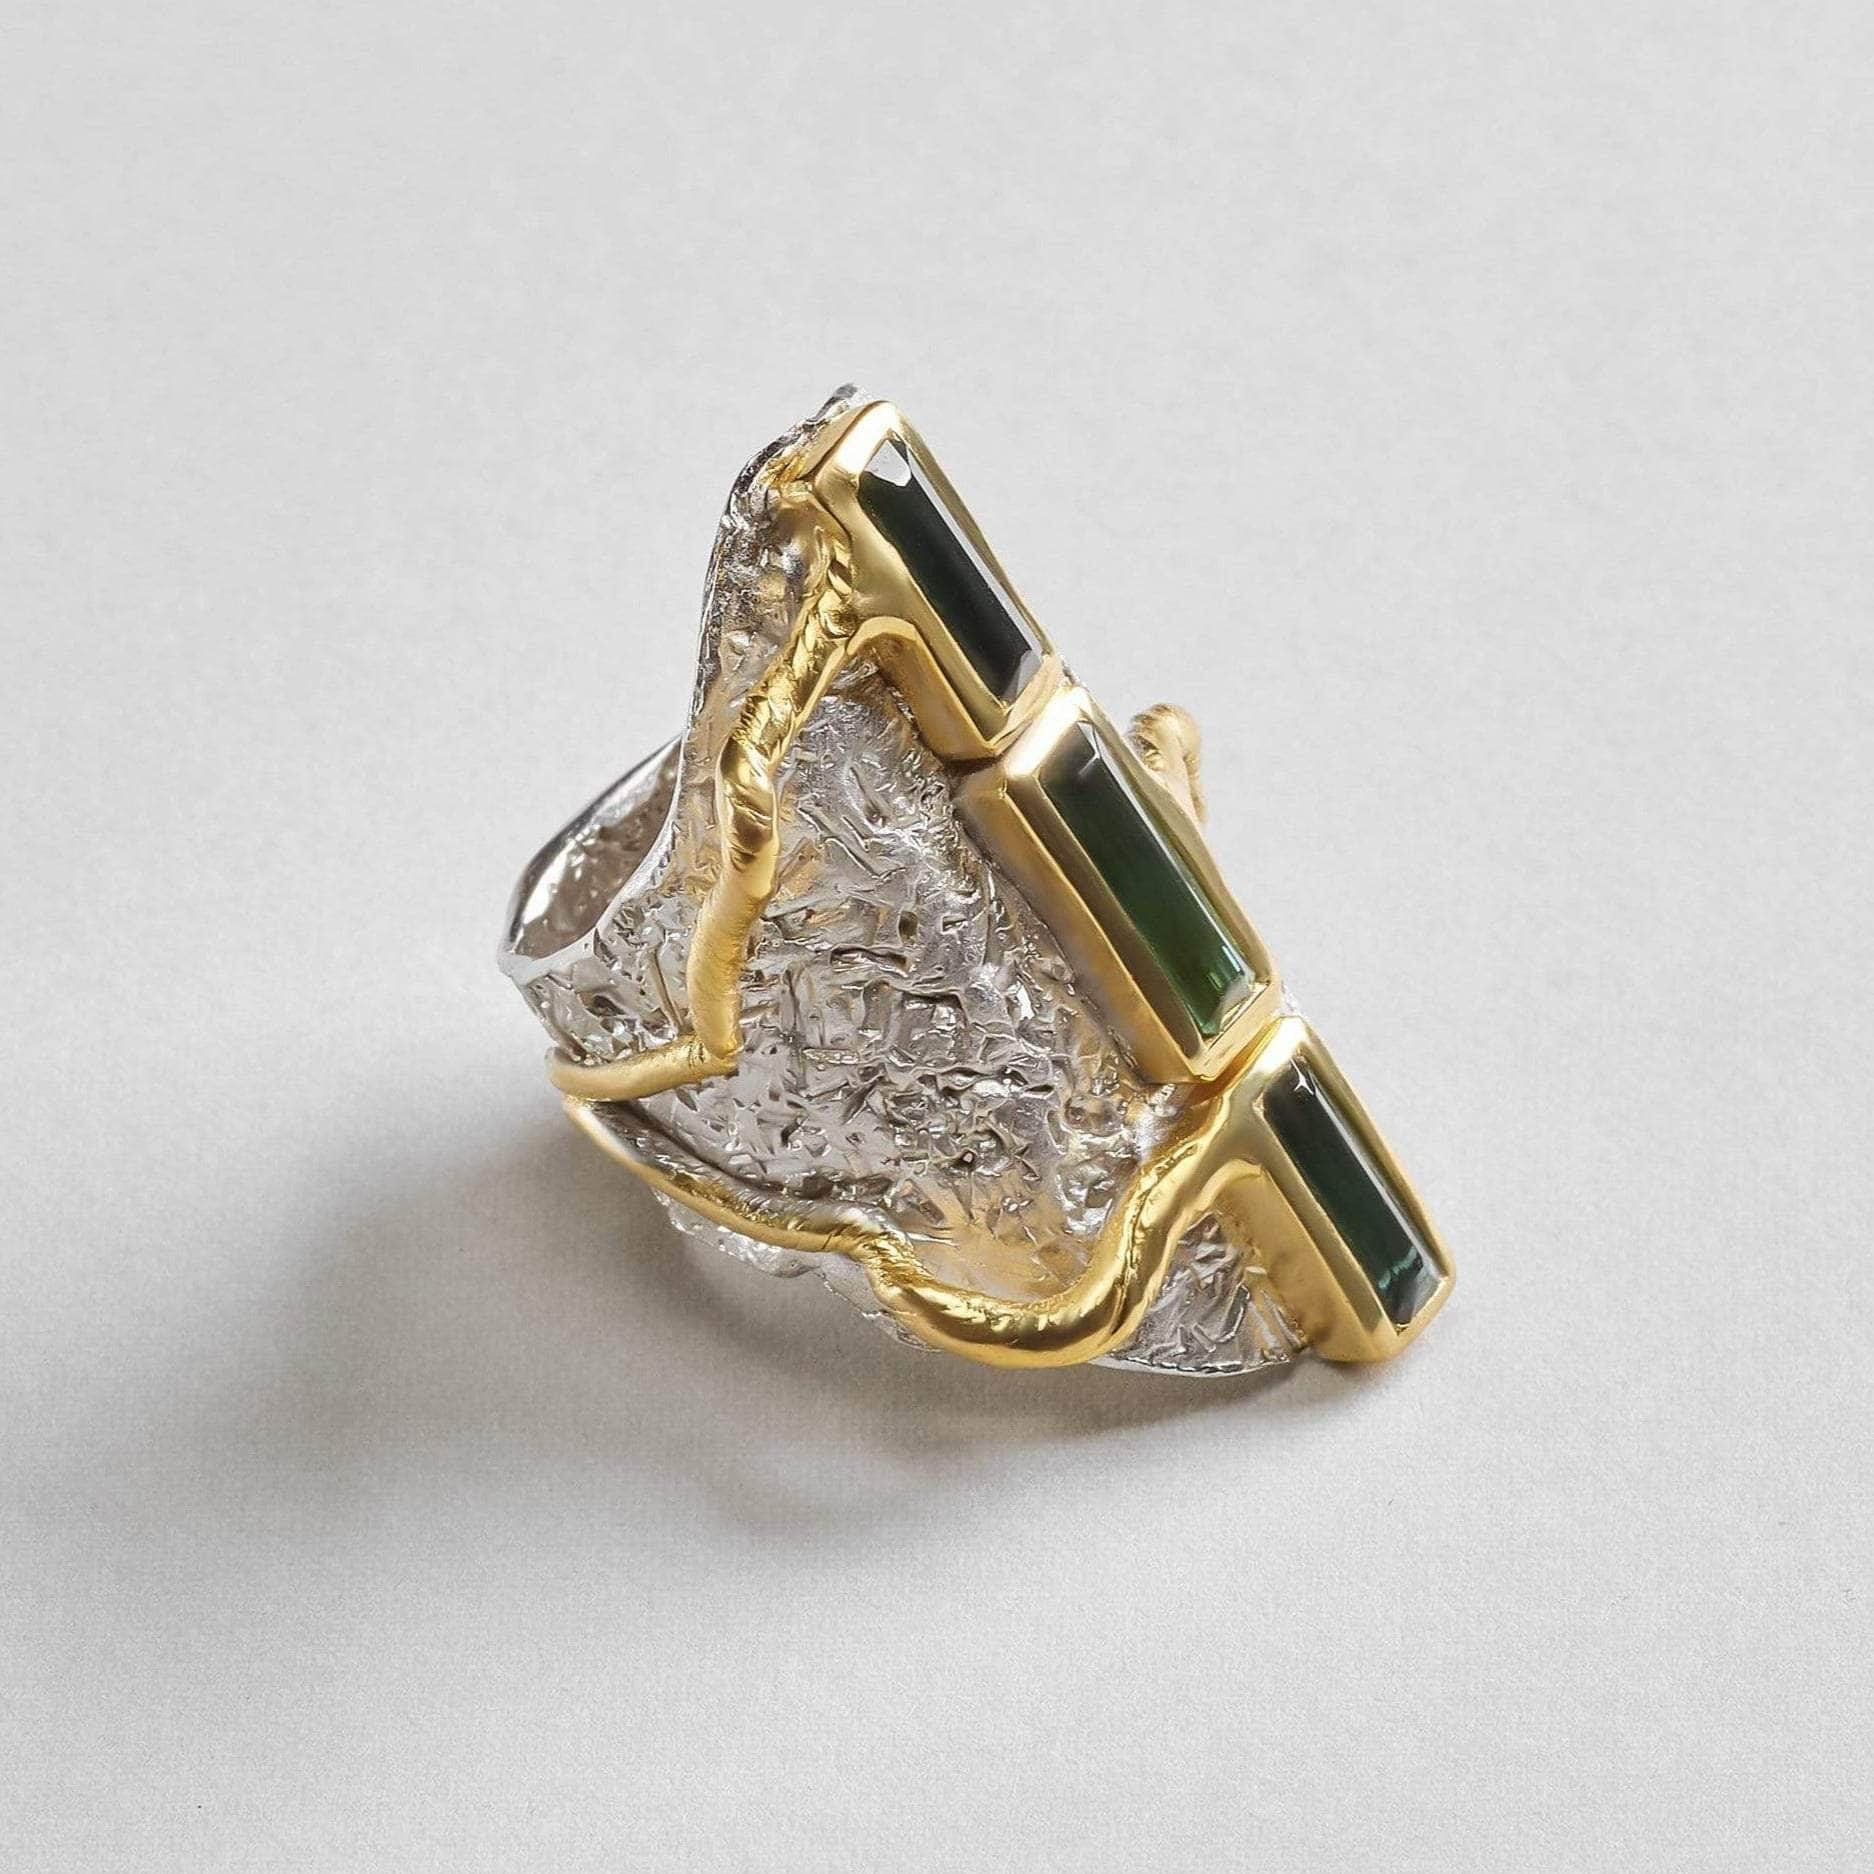 Arain Green Tourmaline Ring